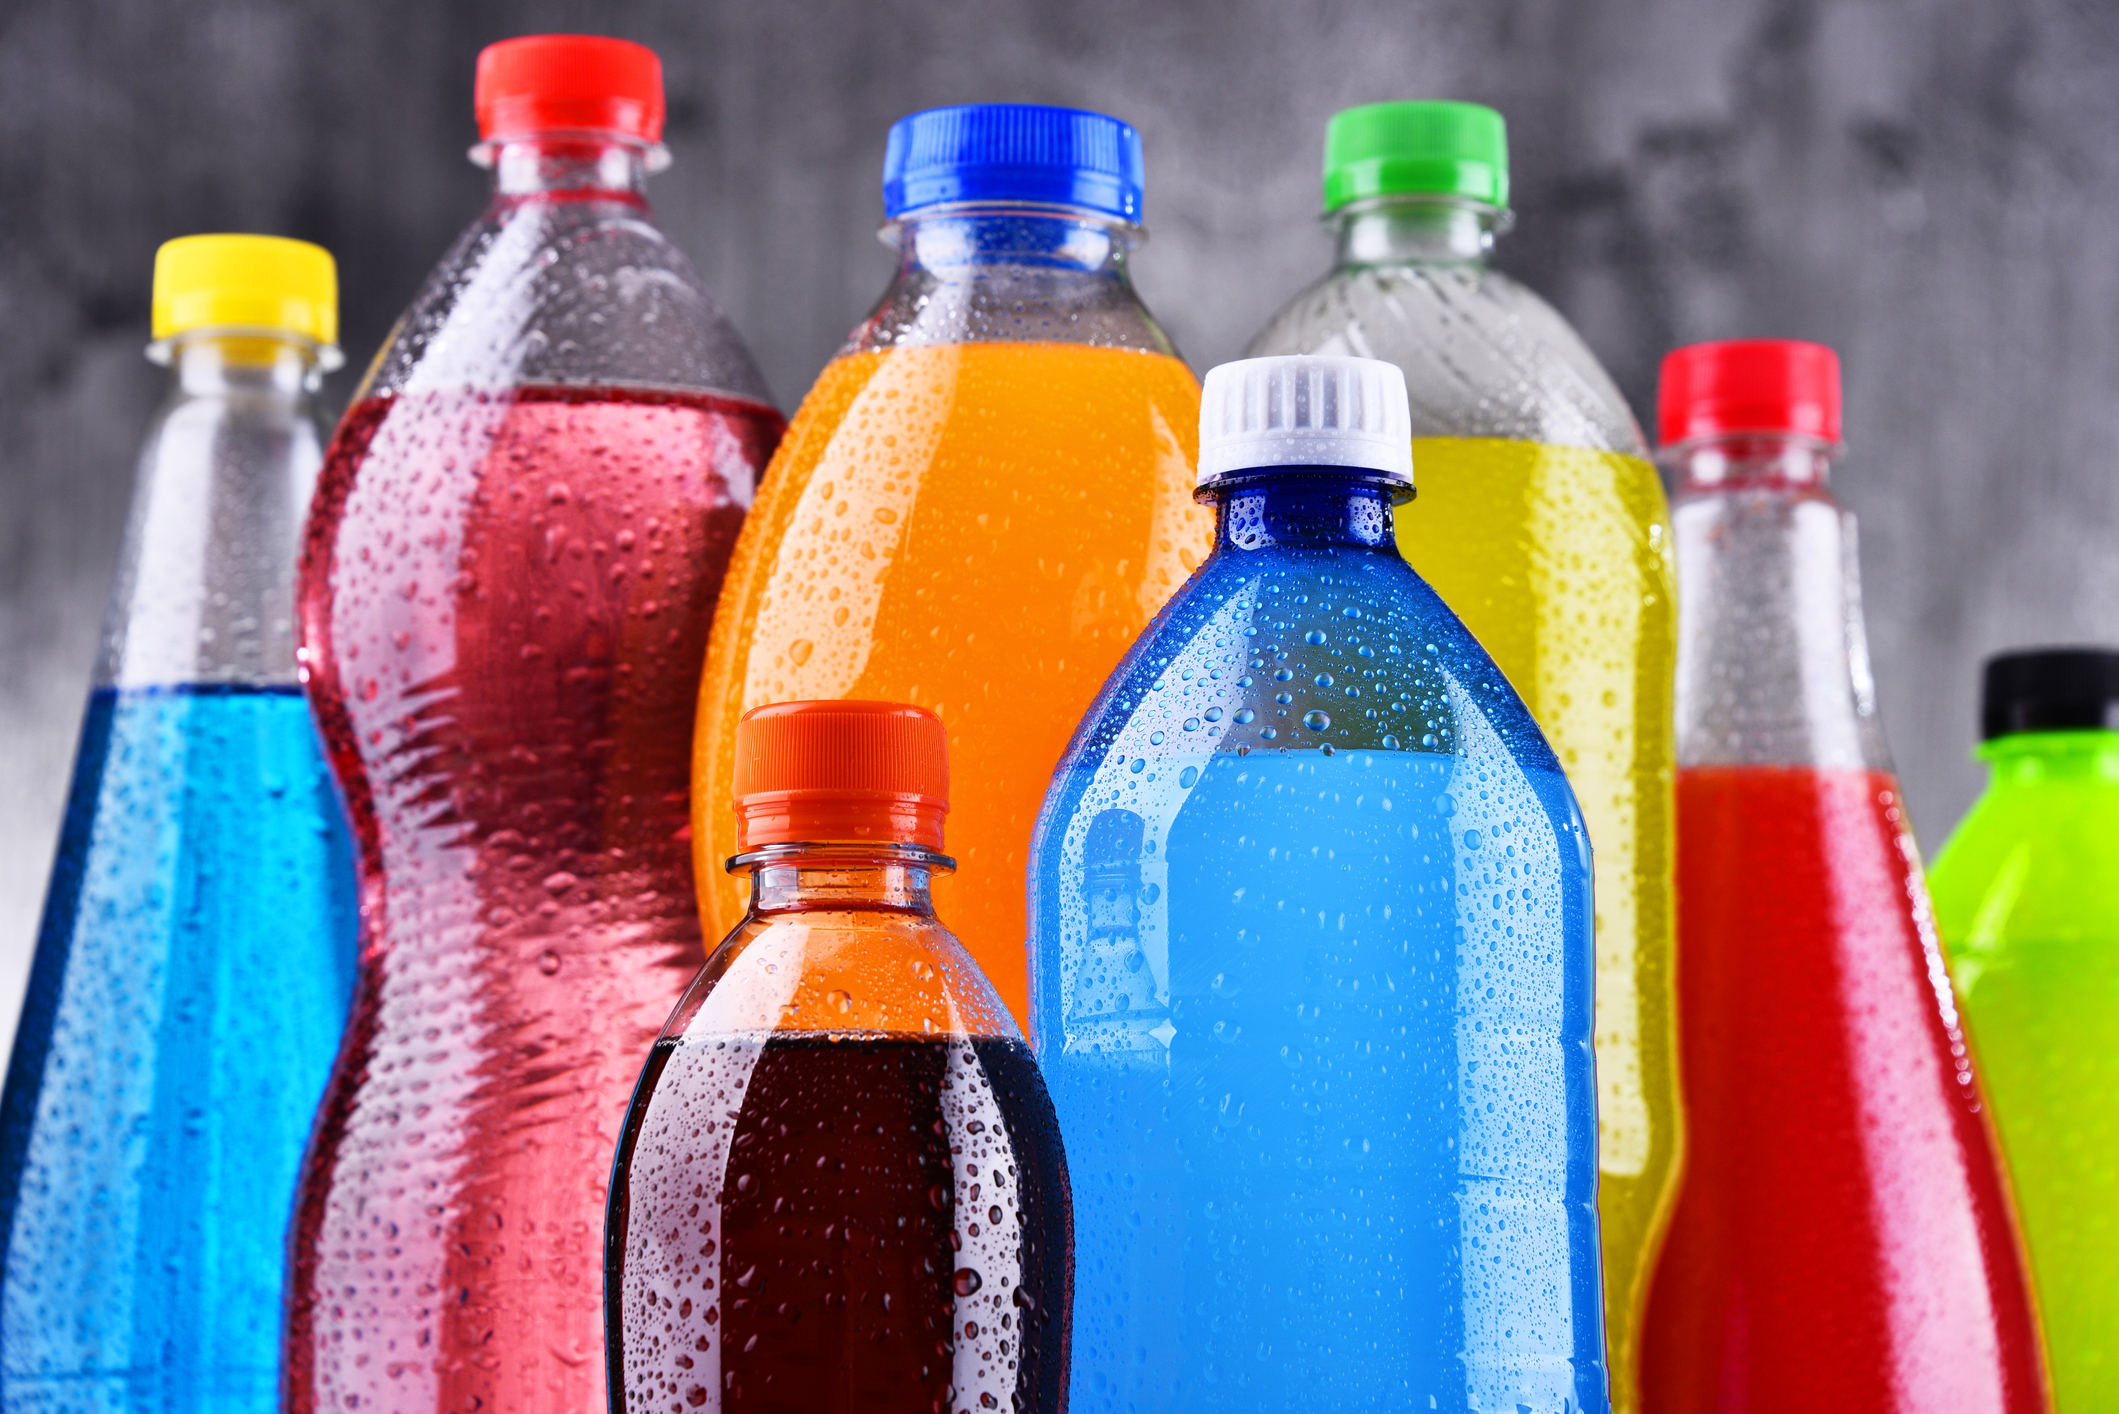 Sugary Drinks Negatively Impact These Two Risk Factors for Heart Disease